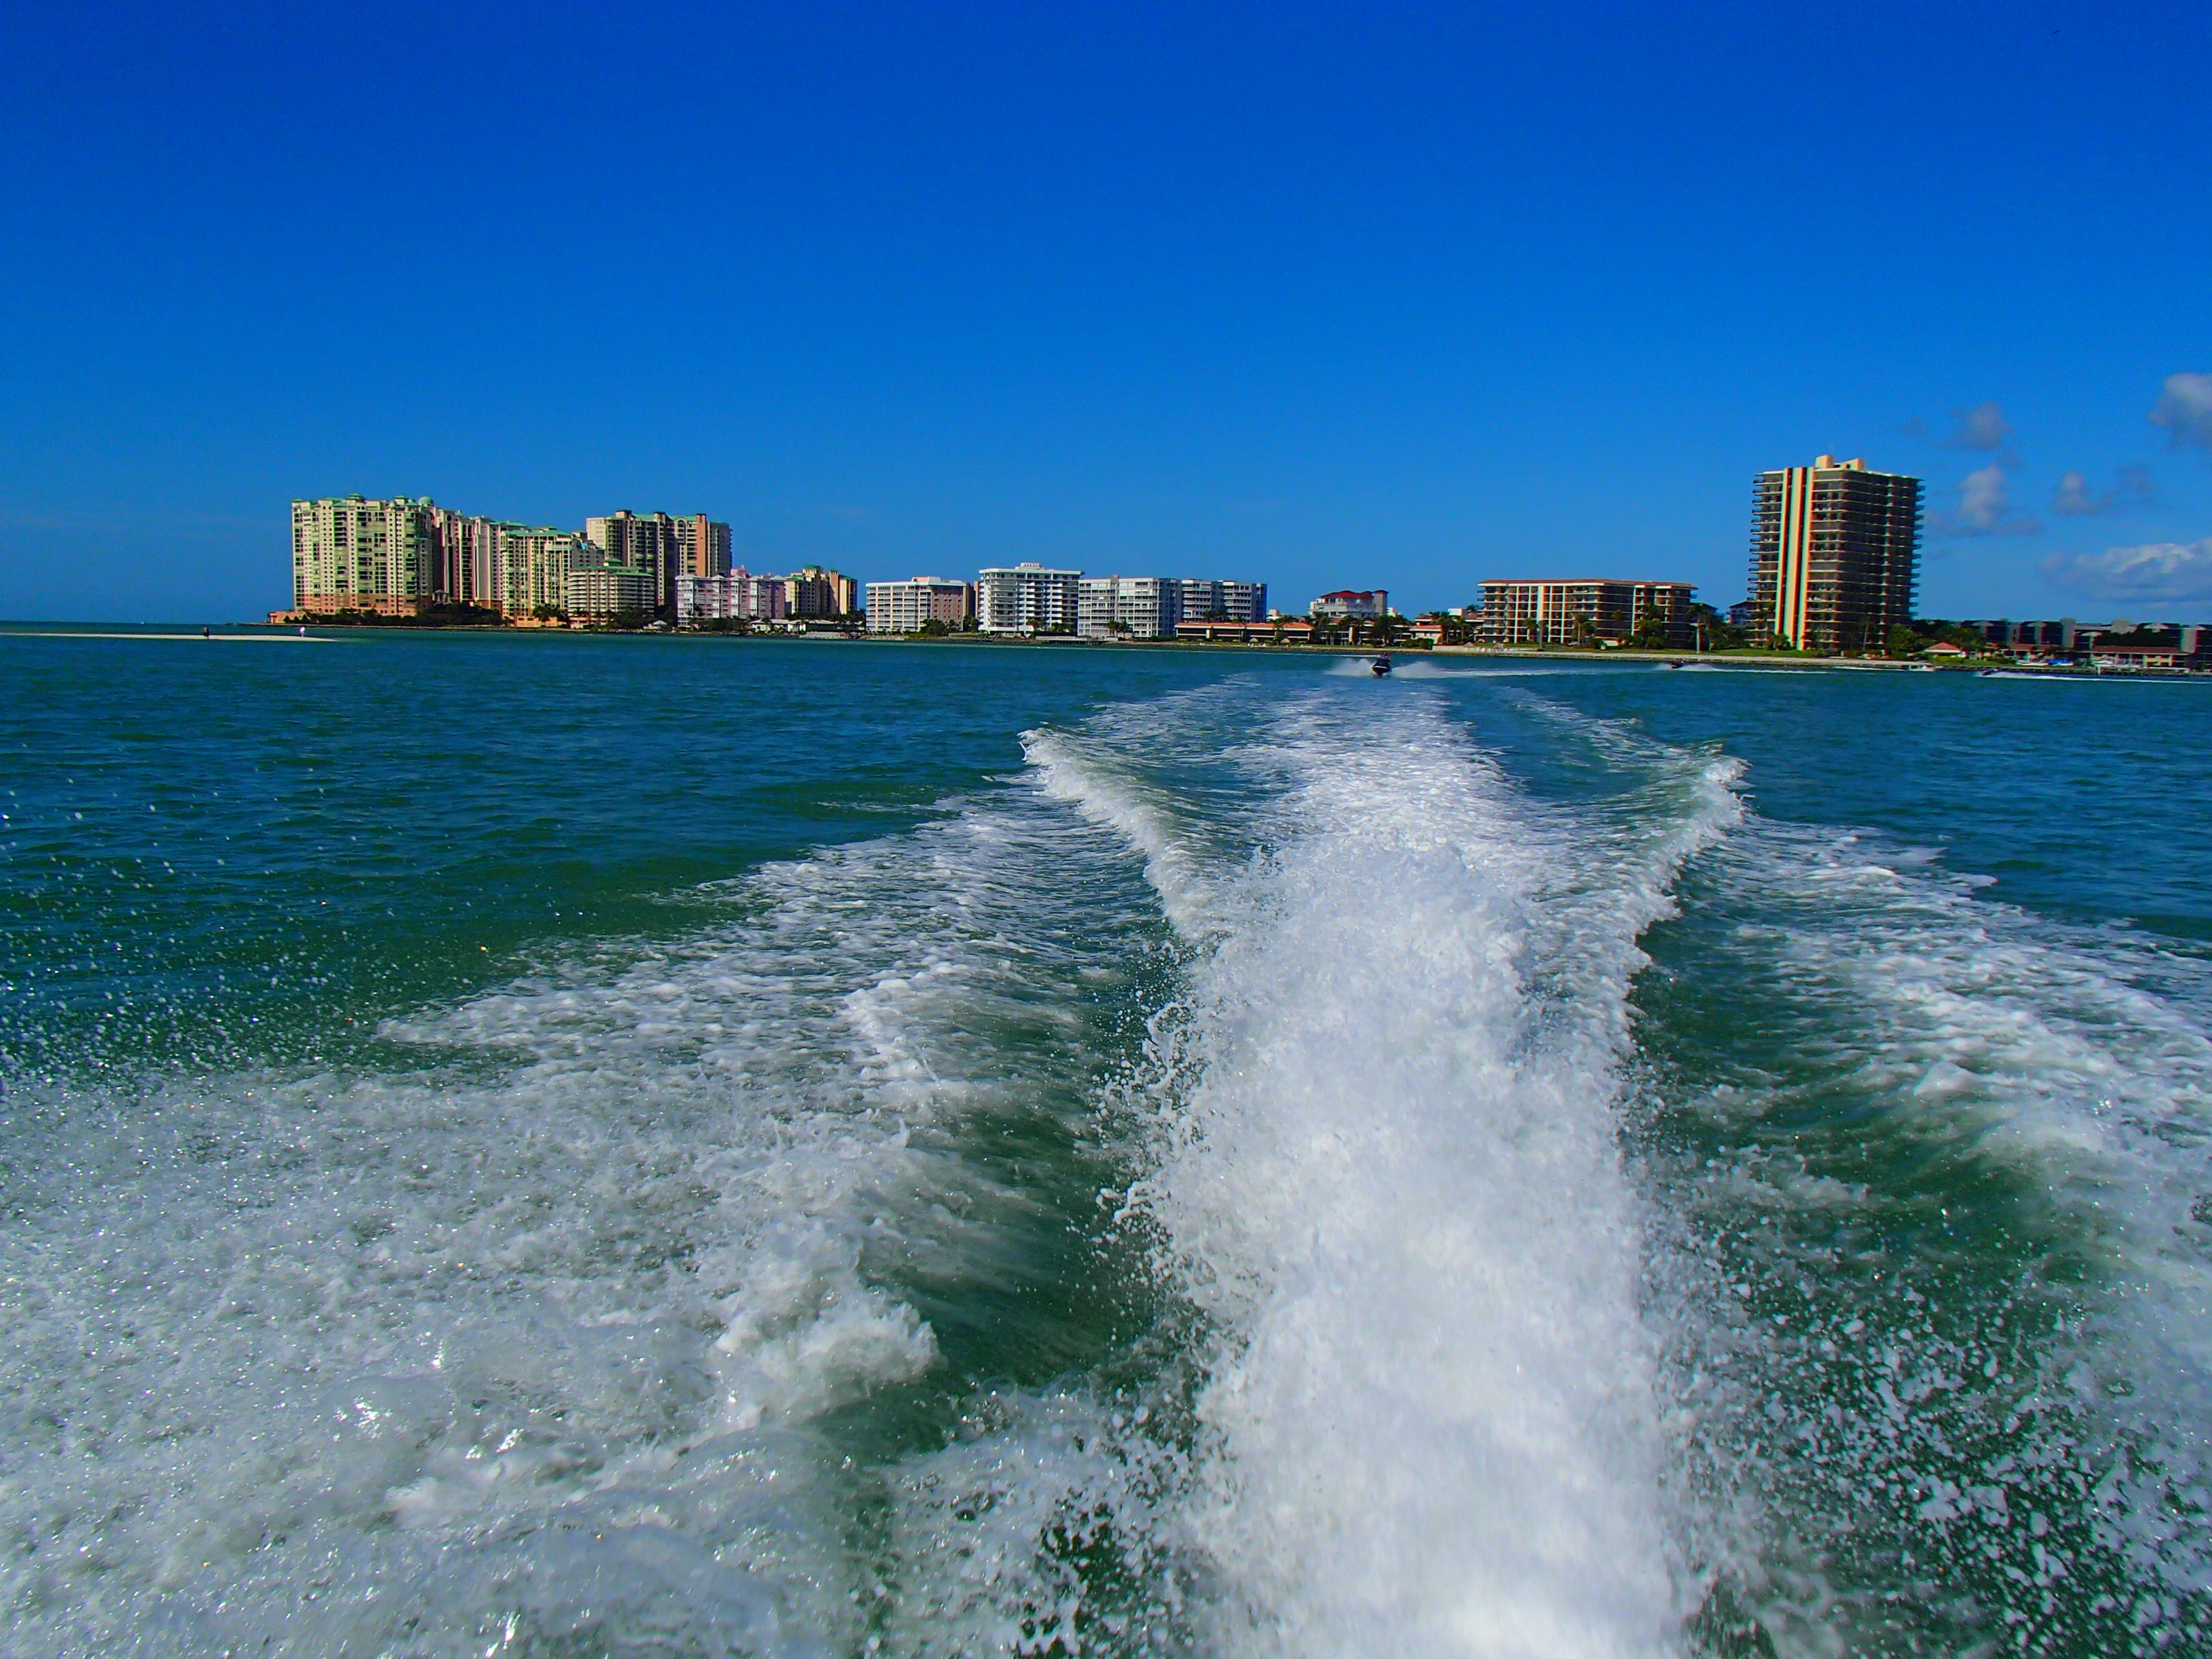 Marco Island seen from the water